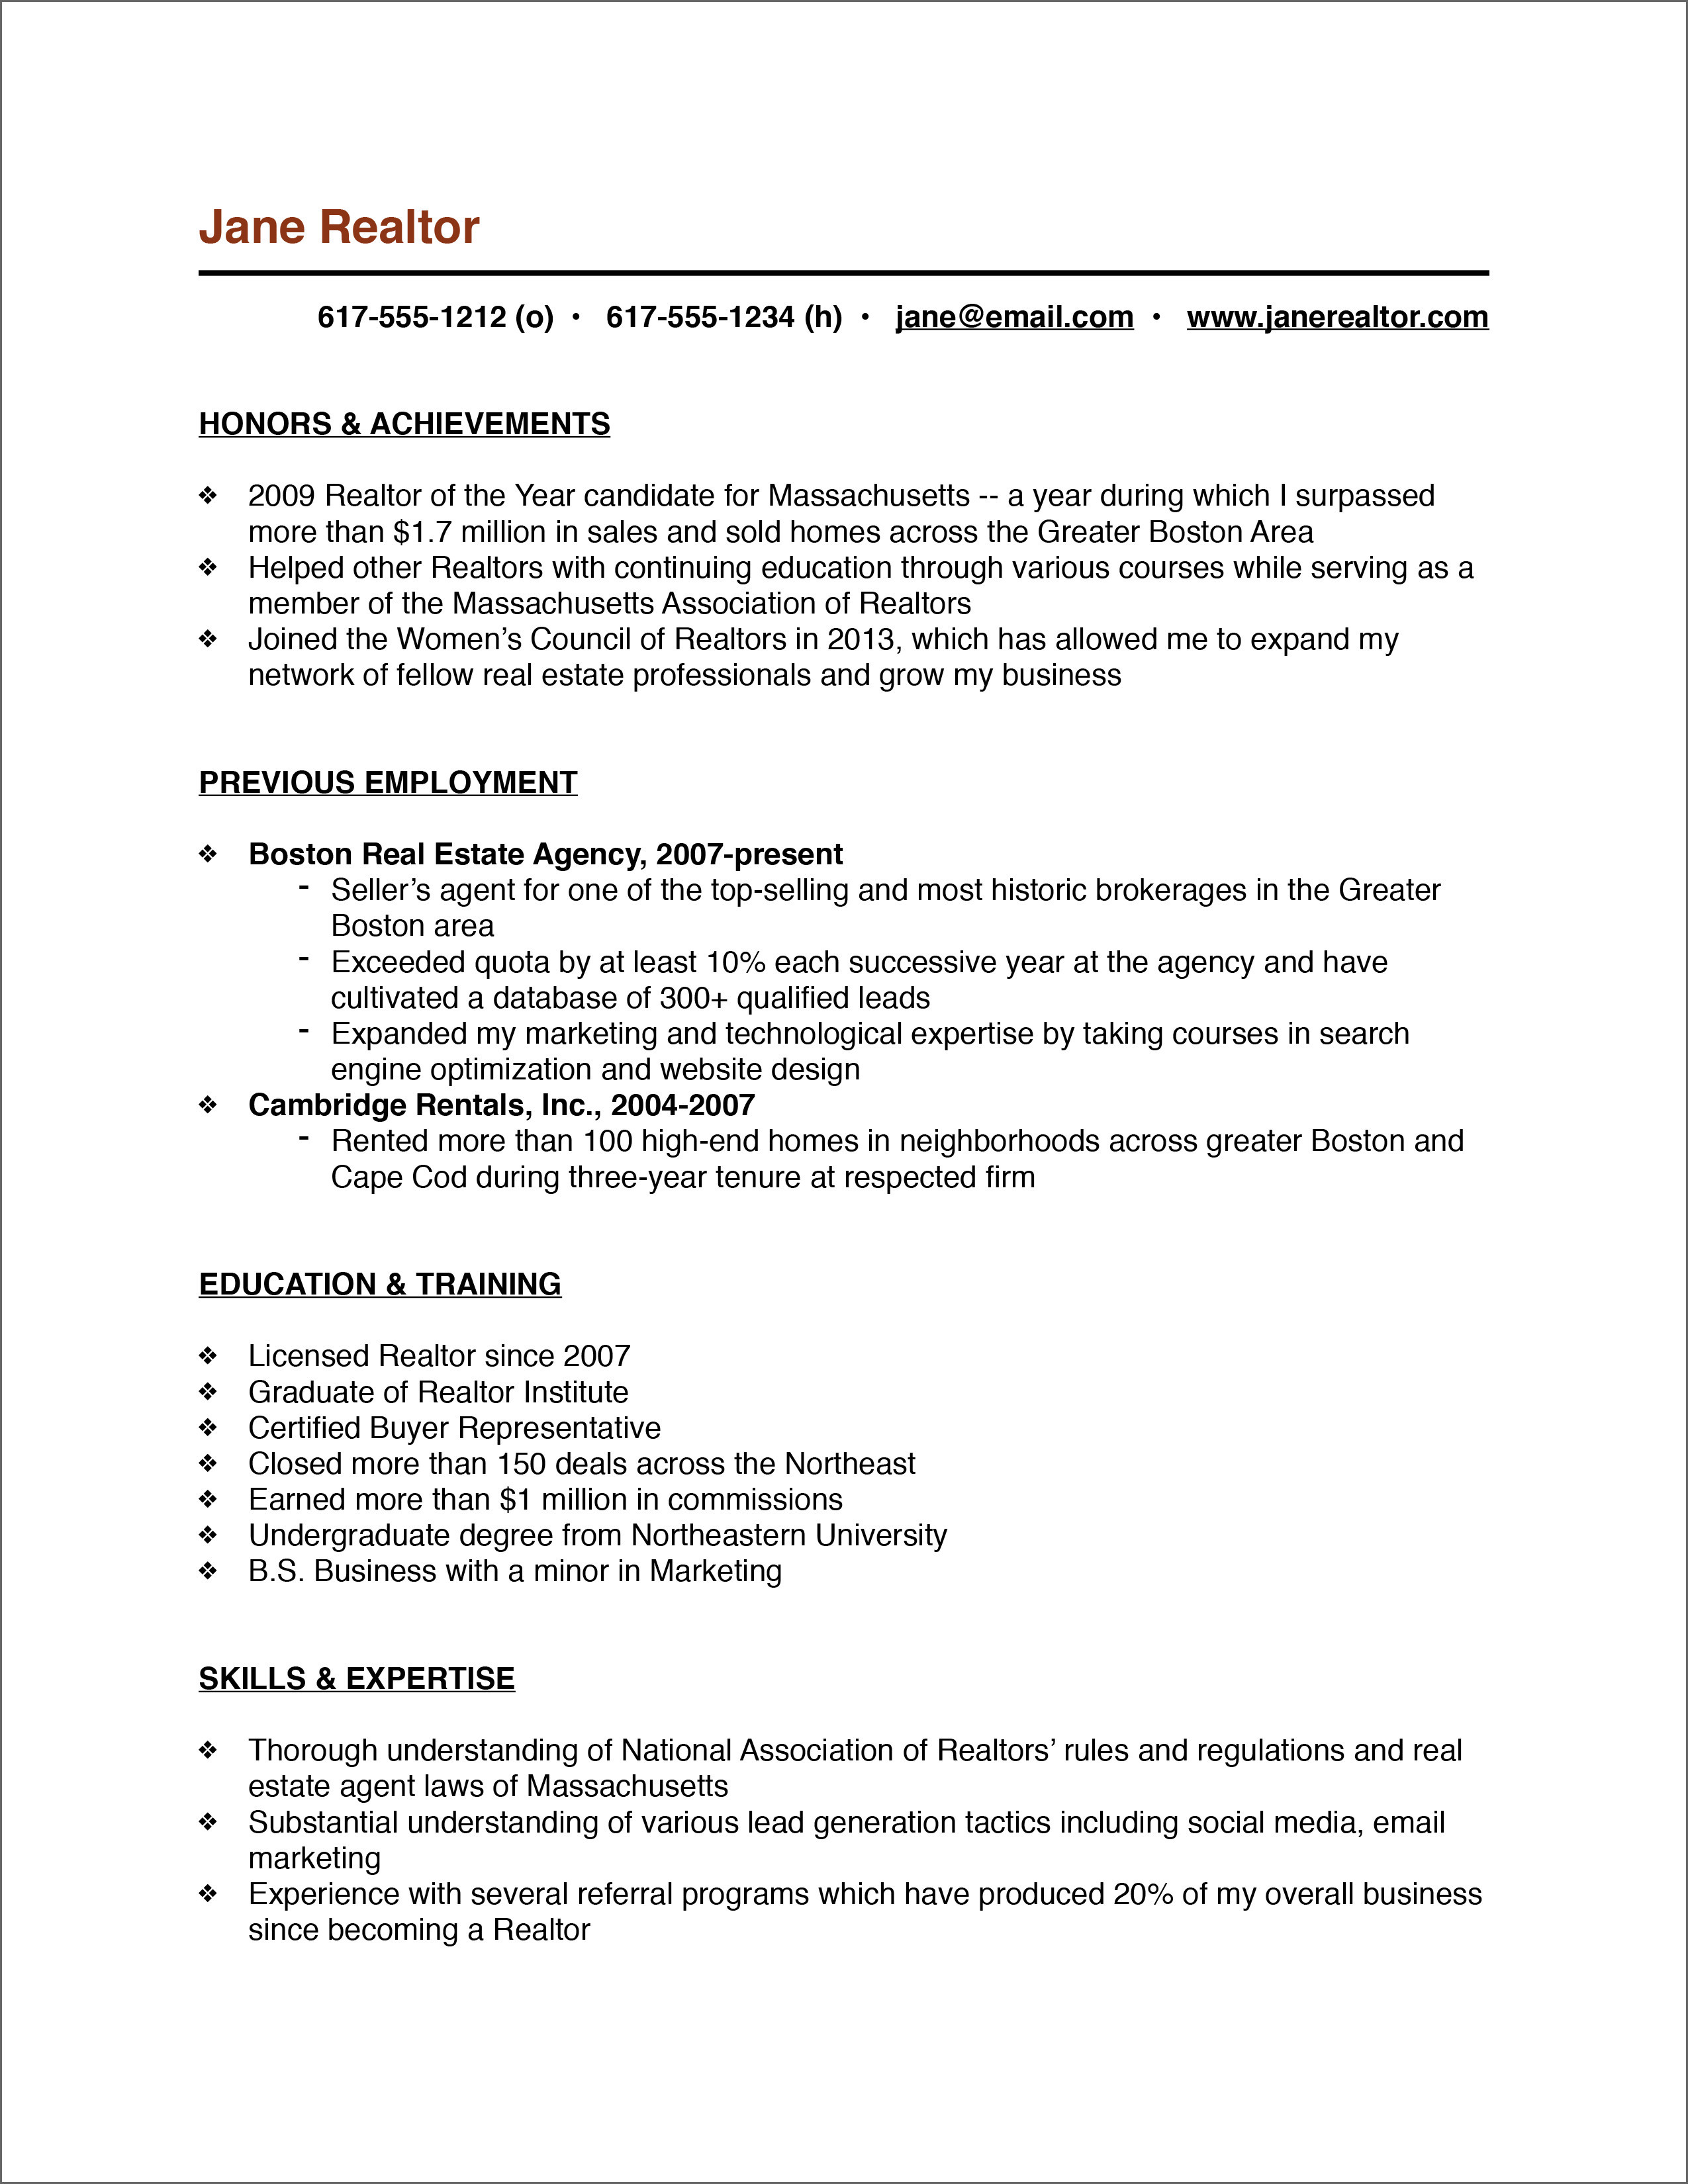 Ross School Of Business Resume Template - Resume Template for Real Estate Agents Reference Entry Level Real